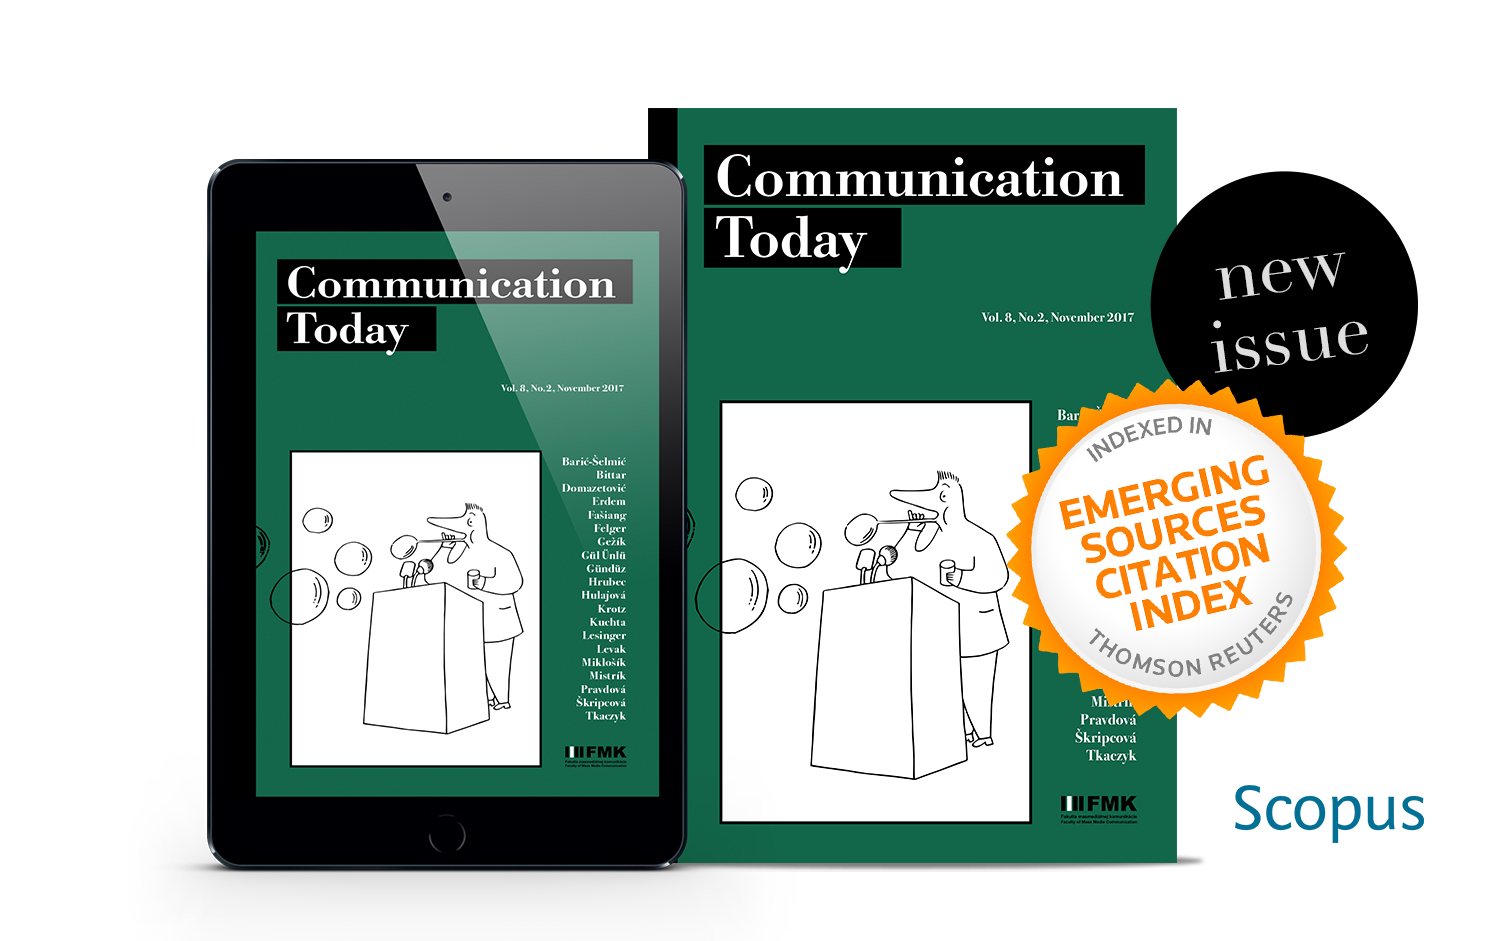 communication today Scientific journal from the mass media and marketing communication field, indexed in web of science, cabell's directories, cejsh, ebsco, and other databases.